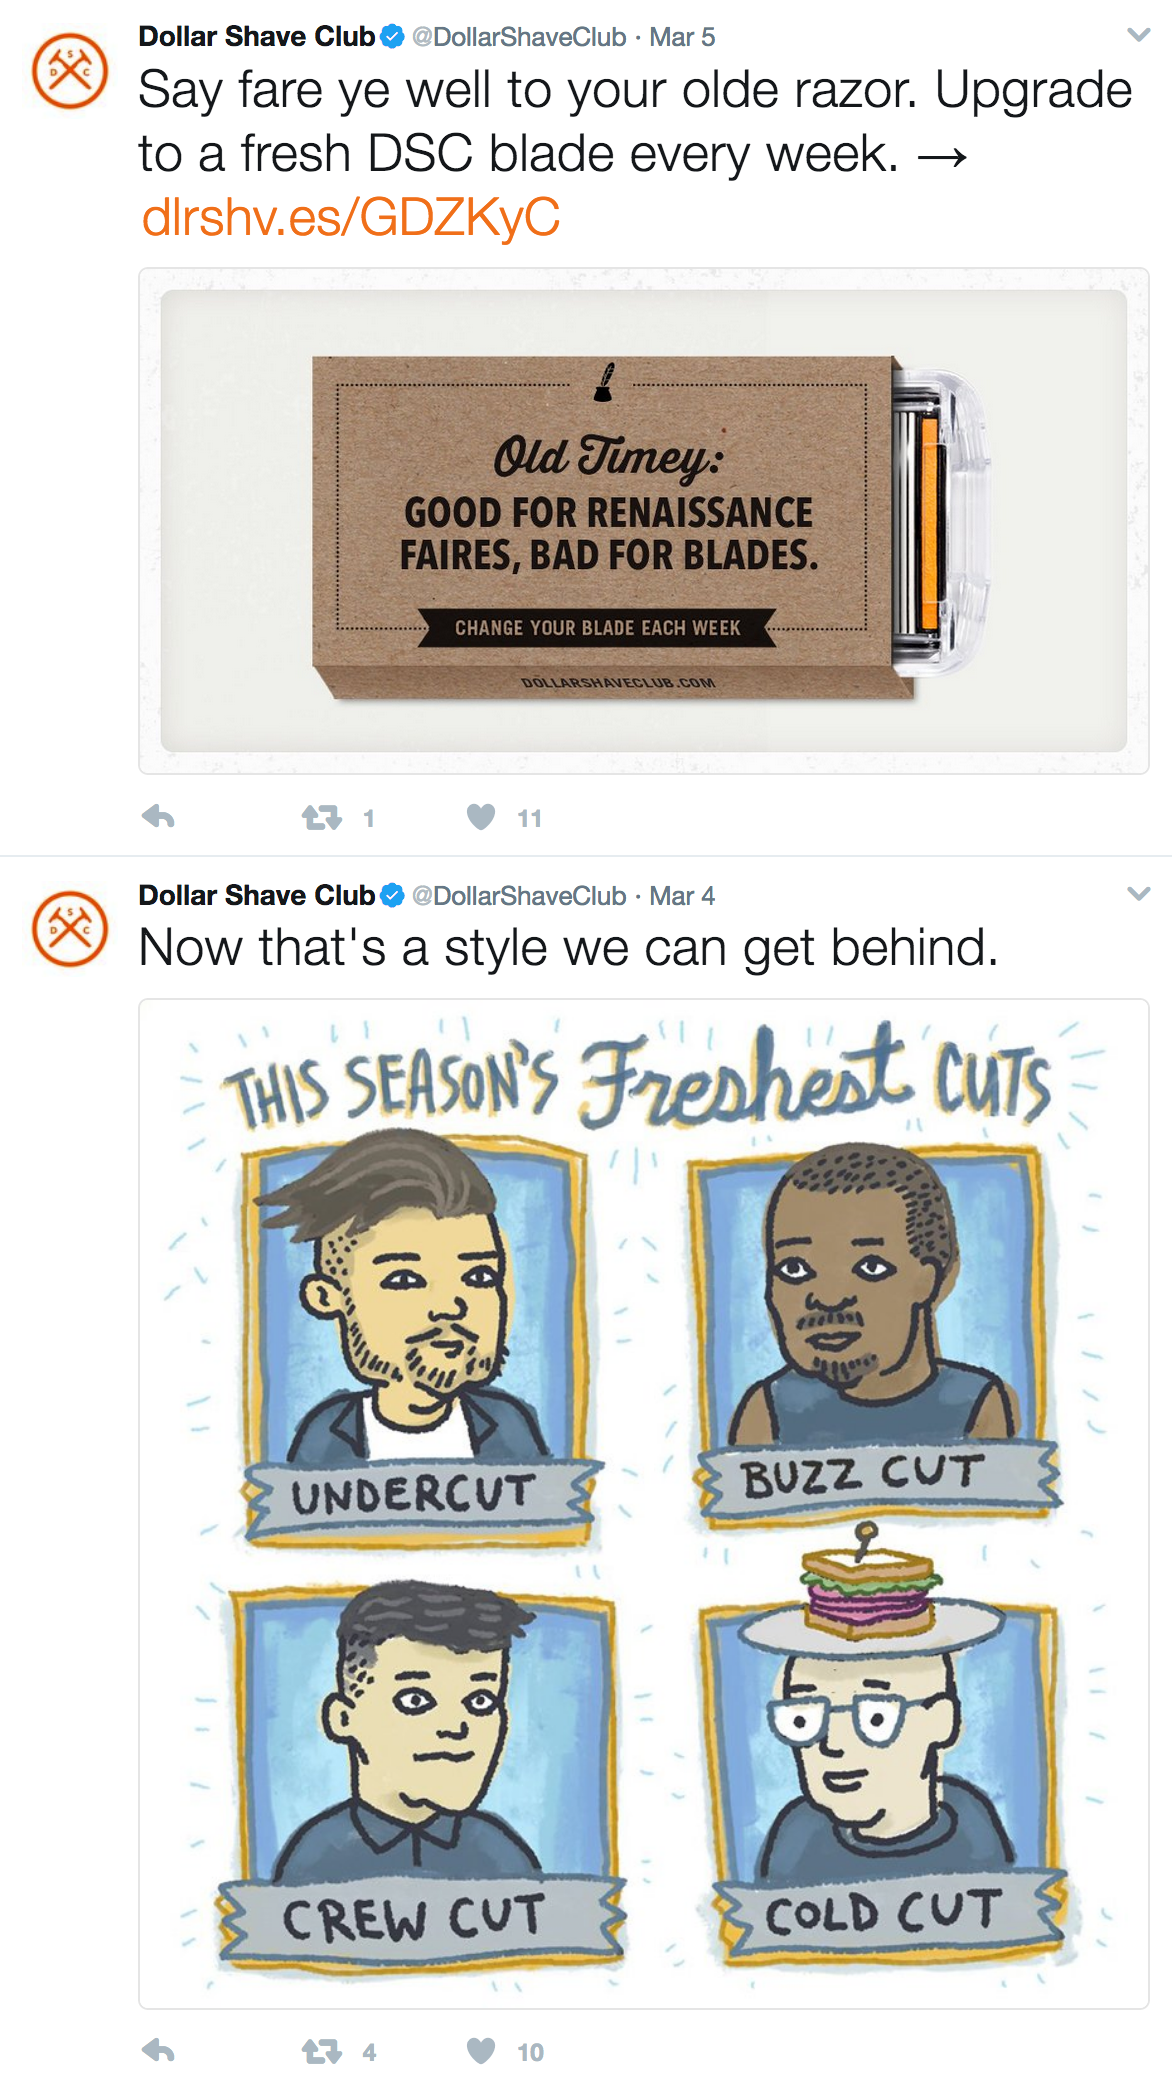 DollarShaveClub_twitter.png